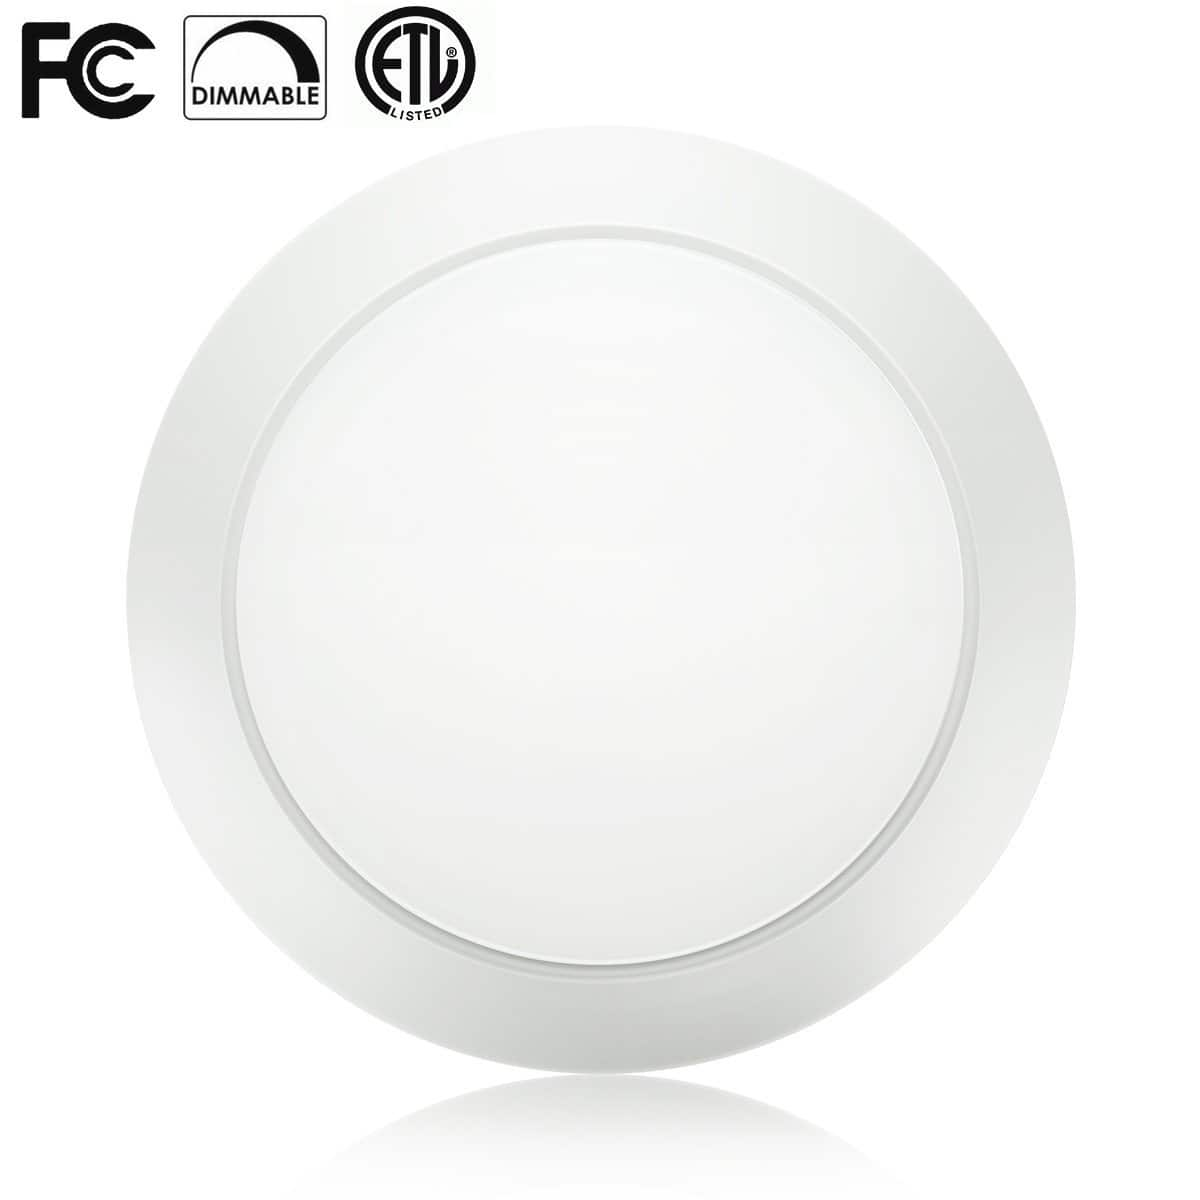 Flush Mount Dimmable LED Disk Light Ceiling Fixture $9.89 AC FS w/ Prime